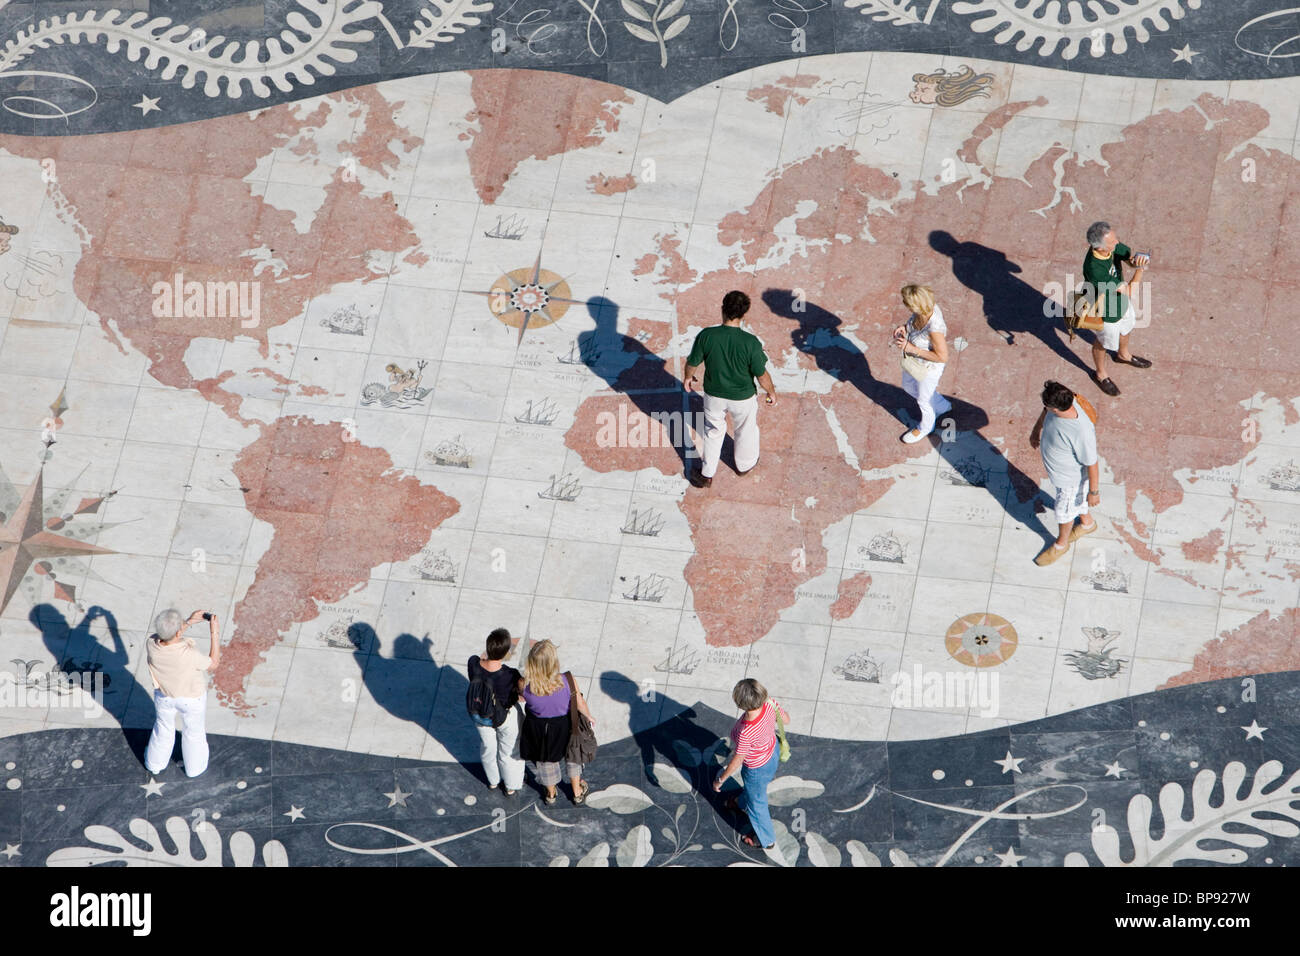 People on the World Mosaic Map, View from the top of the Discoveries Monument, Padrao dos Descobrimentos, Belem, - Stock Image